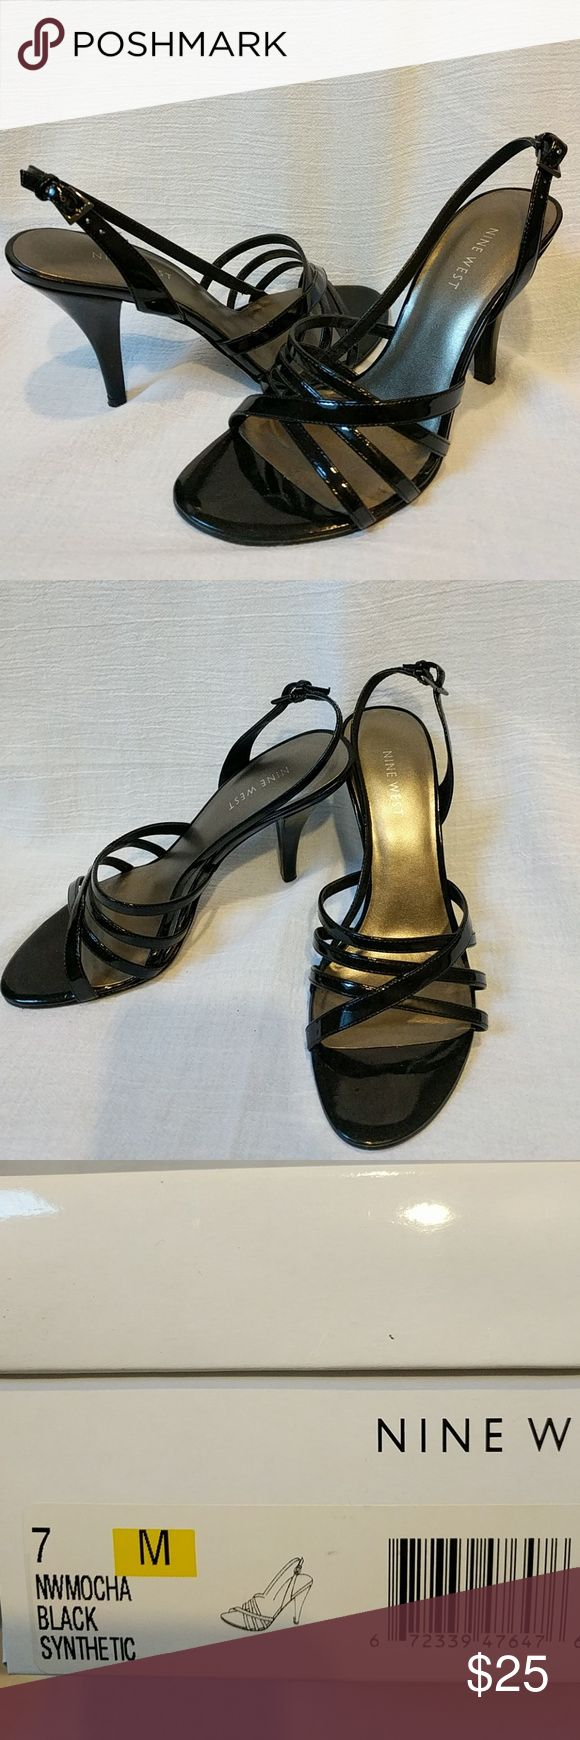 Nine West black patent leather strappy slingbacks Nine West, black patent leather strappy slingbacks. Worn a few times. Nine West Shoes Heels